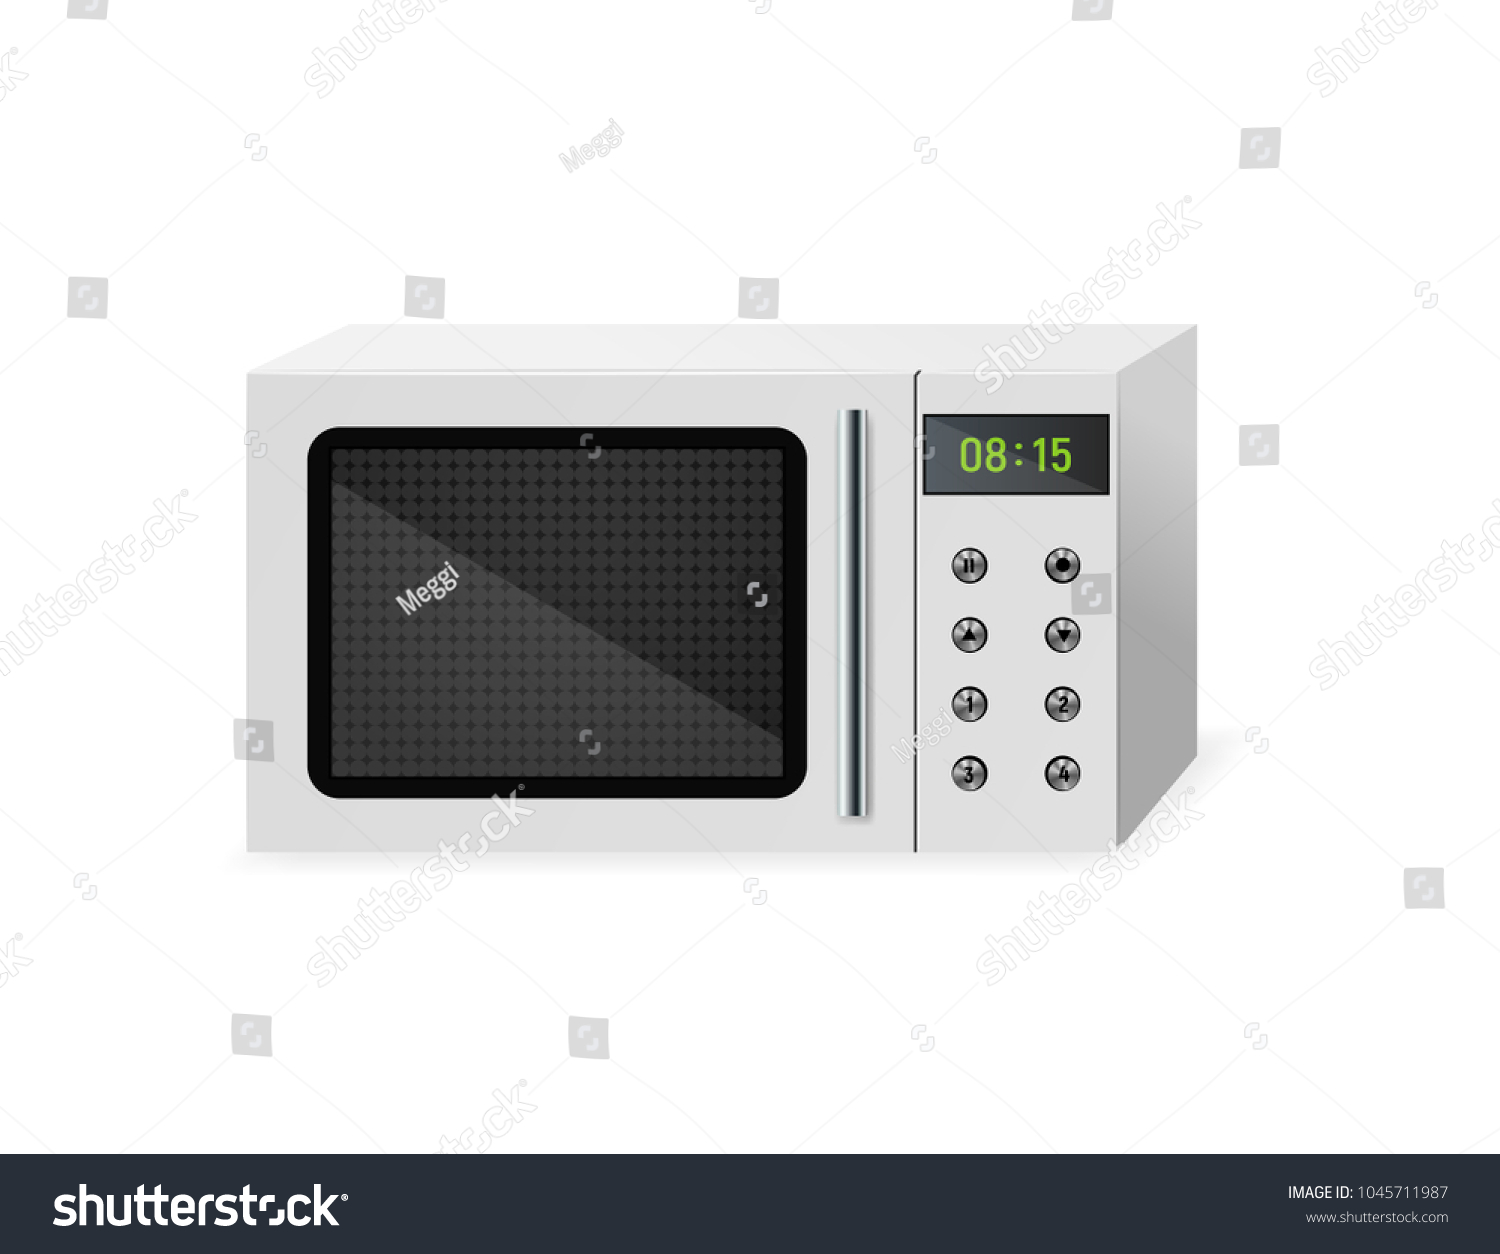 Microwave Household Electrical Equipment Vector Illustration Stock ...